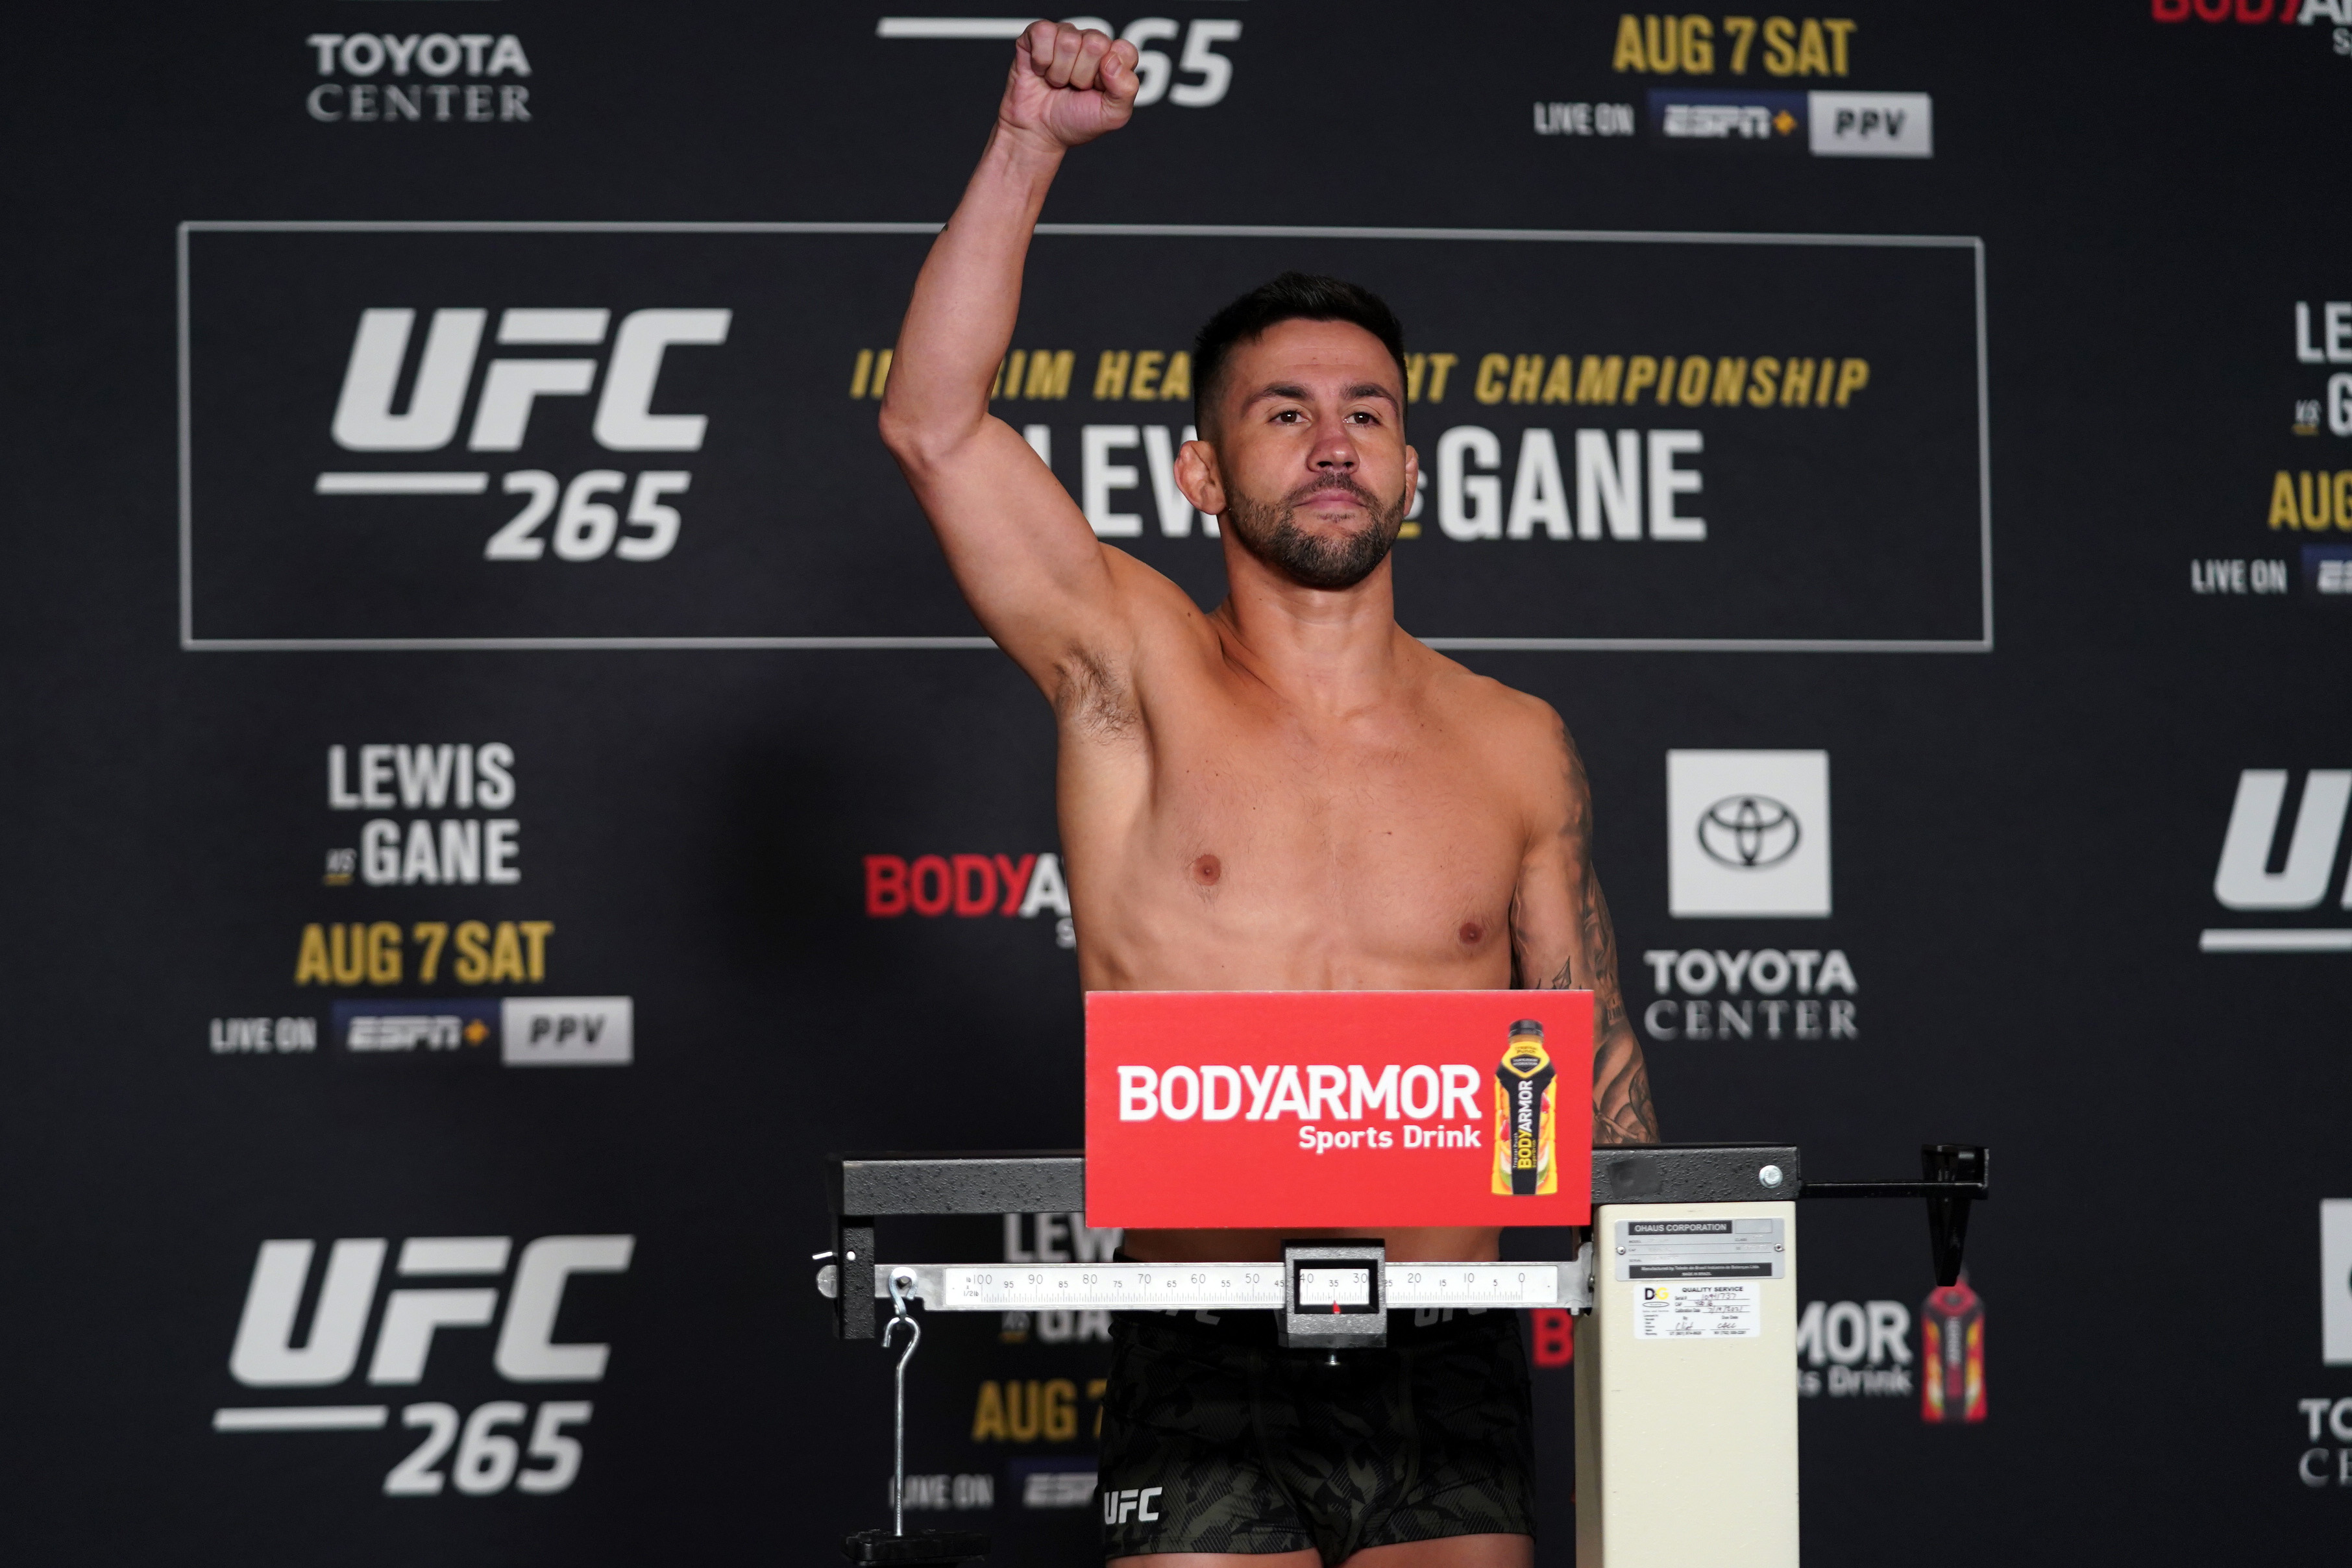 Pedro Munhoz poses on the scale during the UFC 265 official weigh-in at Hyatt Regency Houston on August 06, 2021 in Houston, Texas.